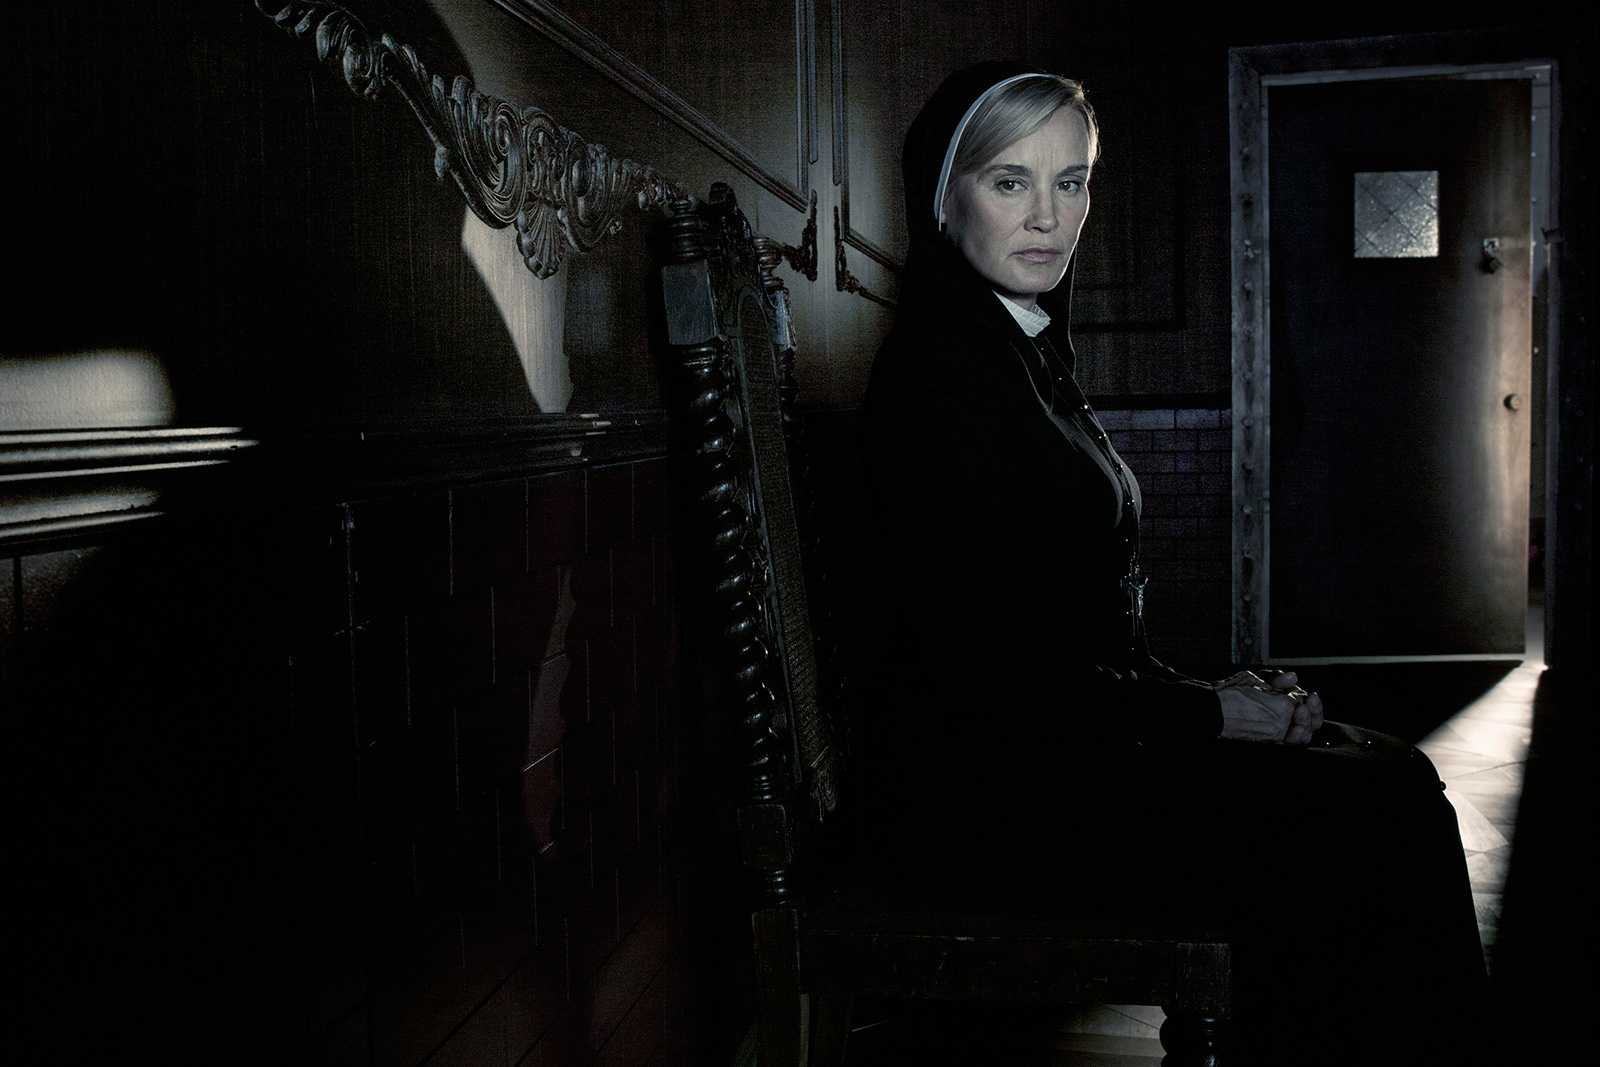 Could American Horror Story Season 4 Take On Nazi Germany?